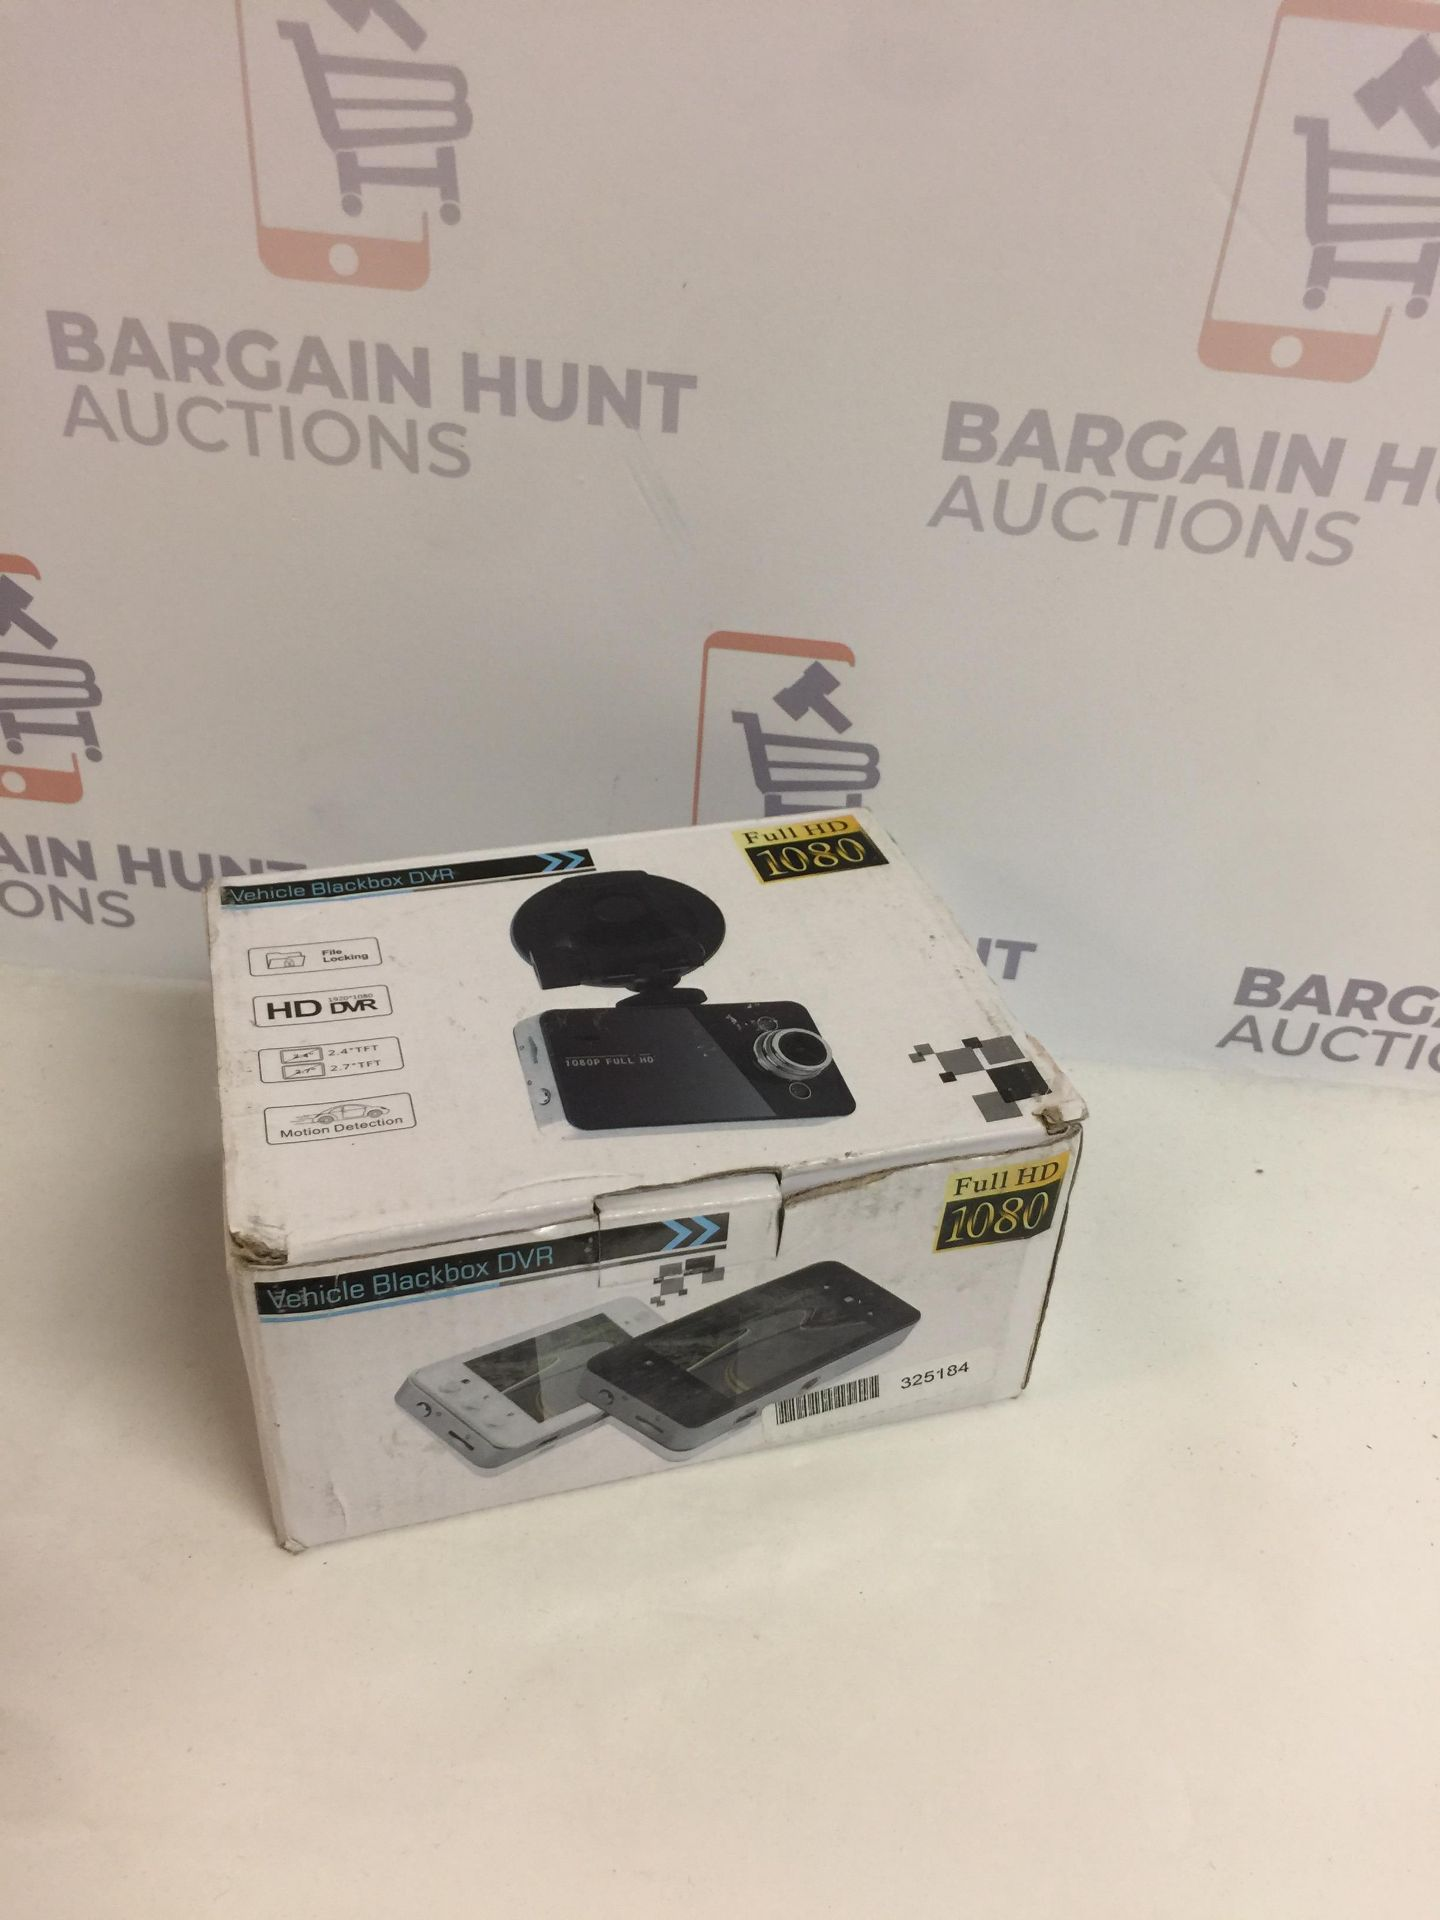 Lot 72 - Vehicle Blackbox DVR